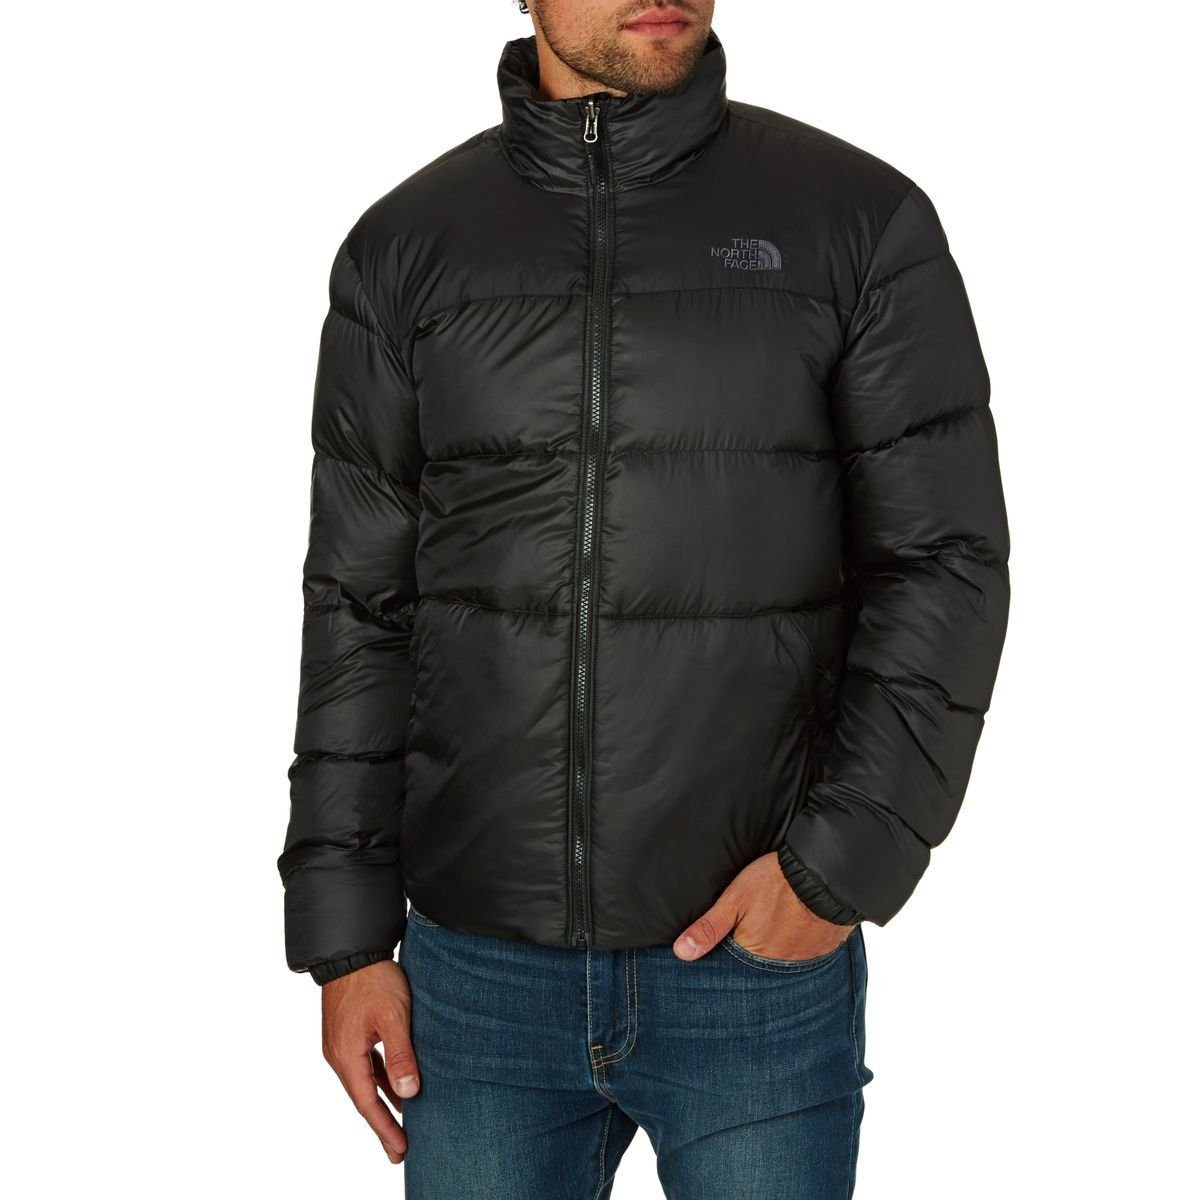 TALLA XL. North Face M Nuptse III Jacket - Chaqueta, Hombre